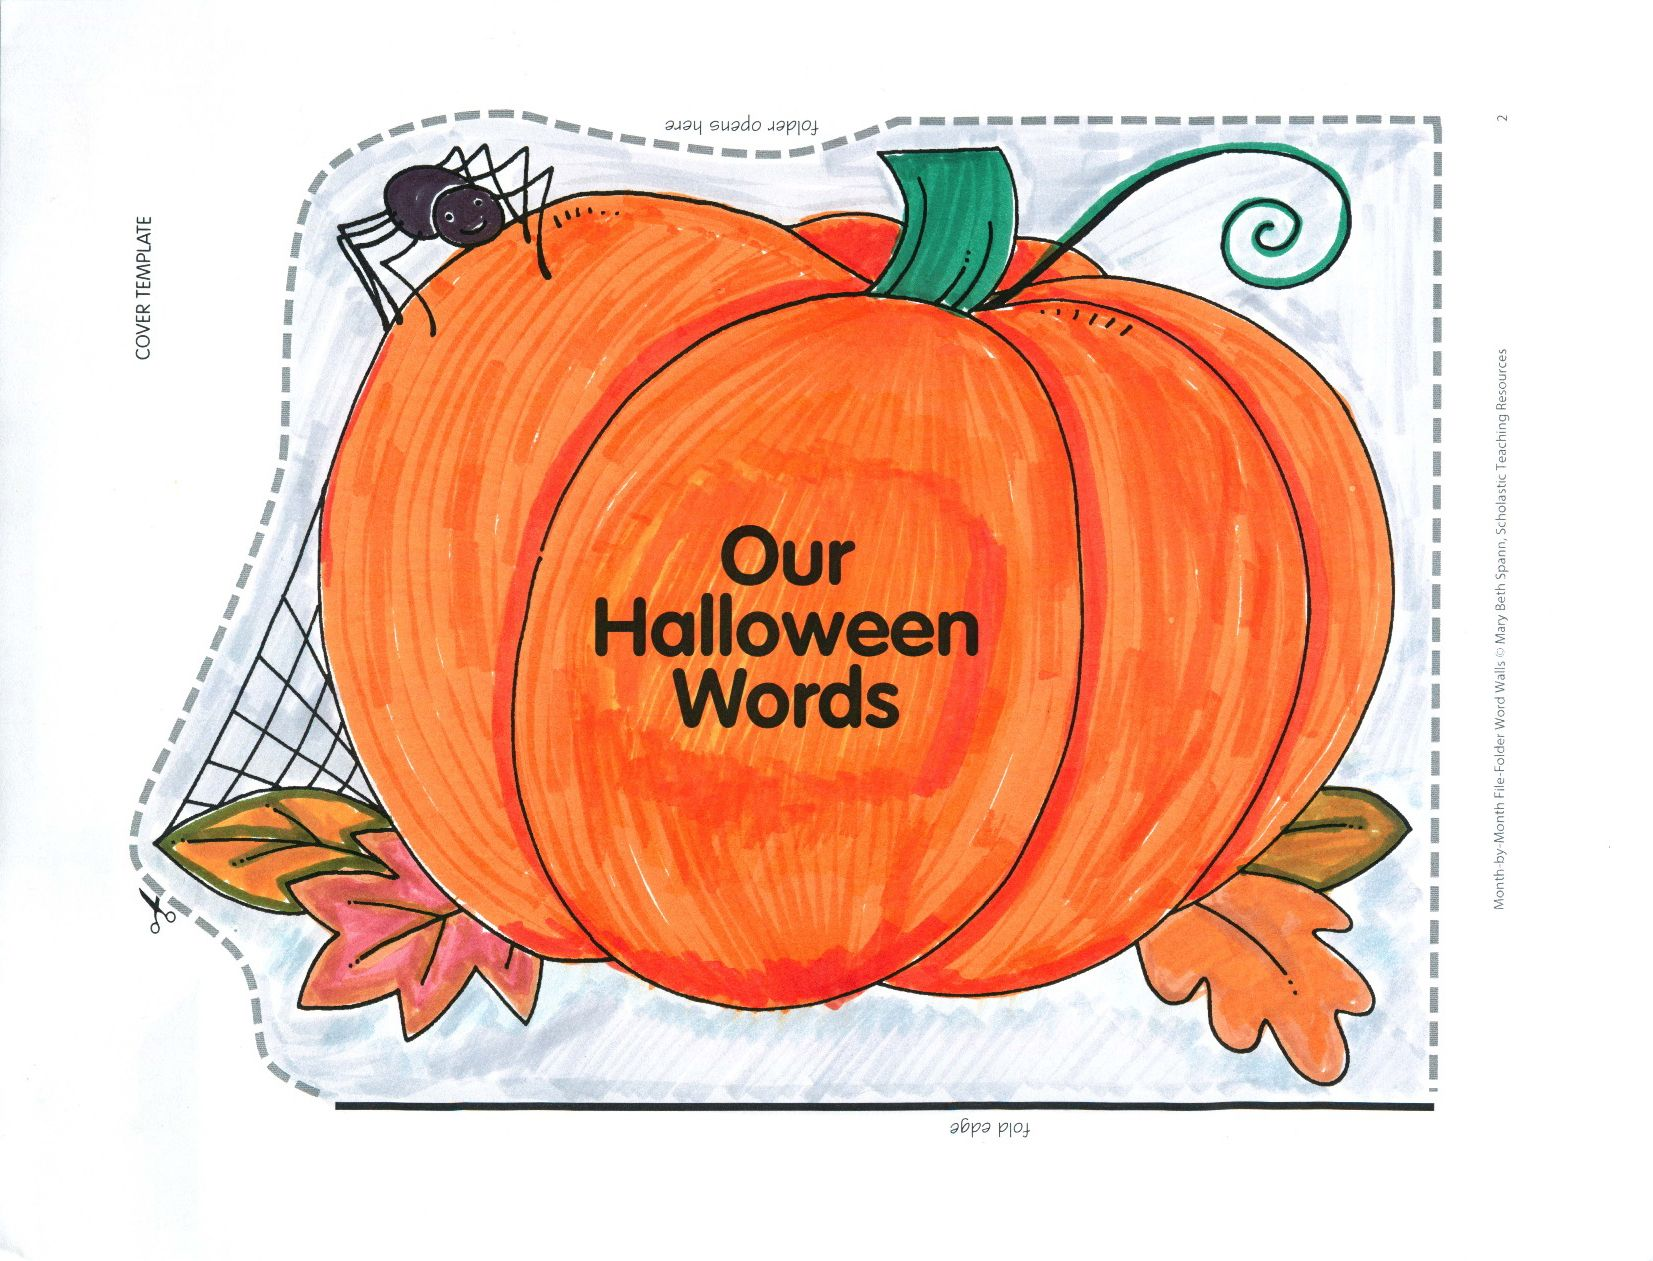 Spooky Pumpkin Will Guard With Care Those Halloween Words That Spook And Scare Use This Pattern And Directions To Mak Halloween Words Word Wall Spooky Pumpkin [ 1261 x 1653 Pixel ]